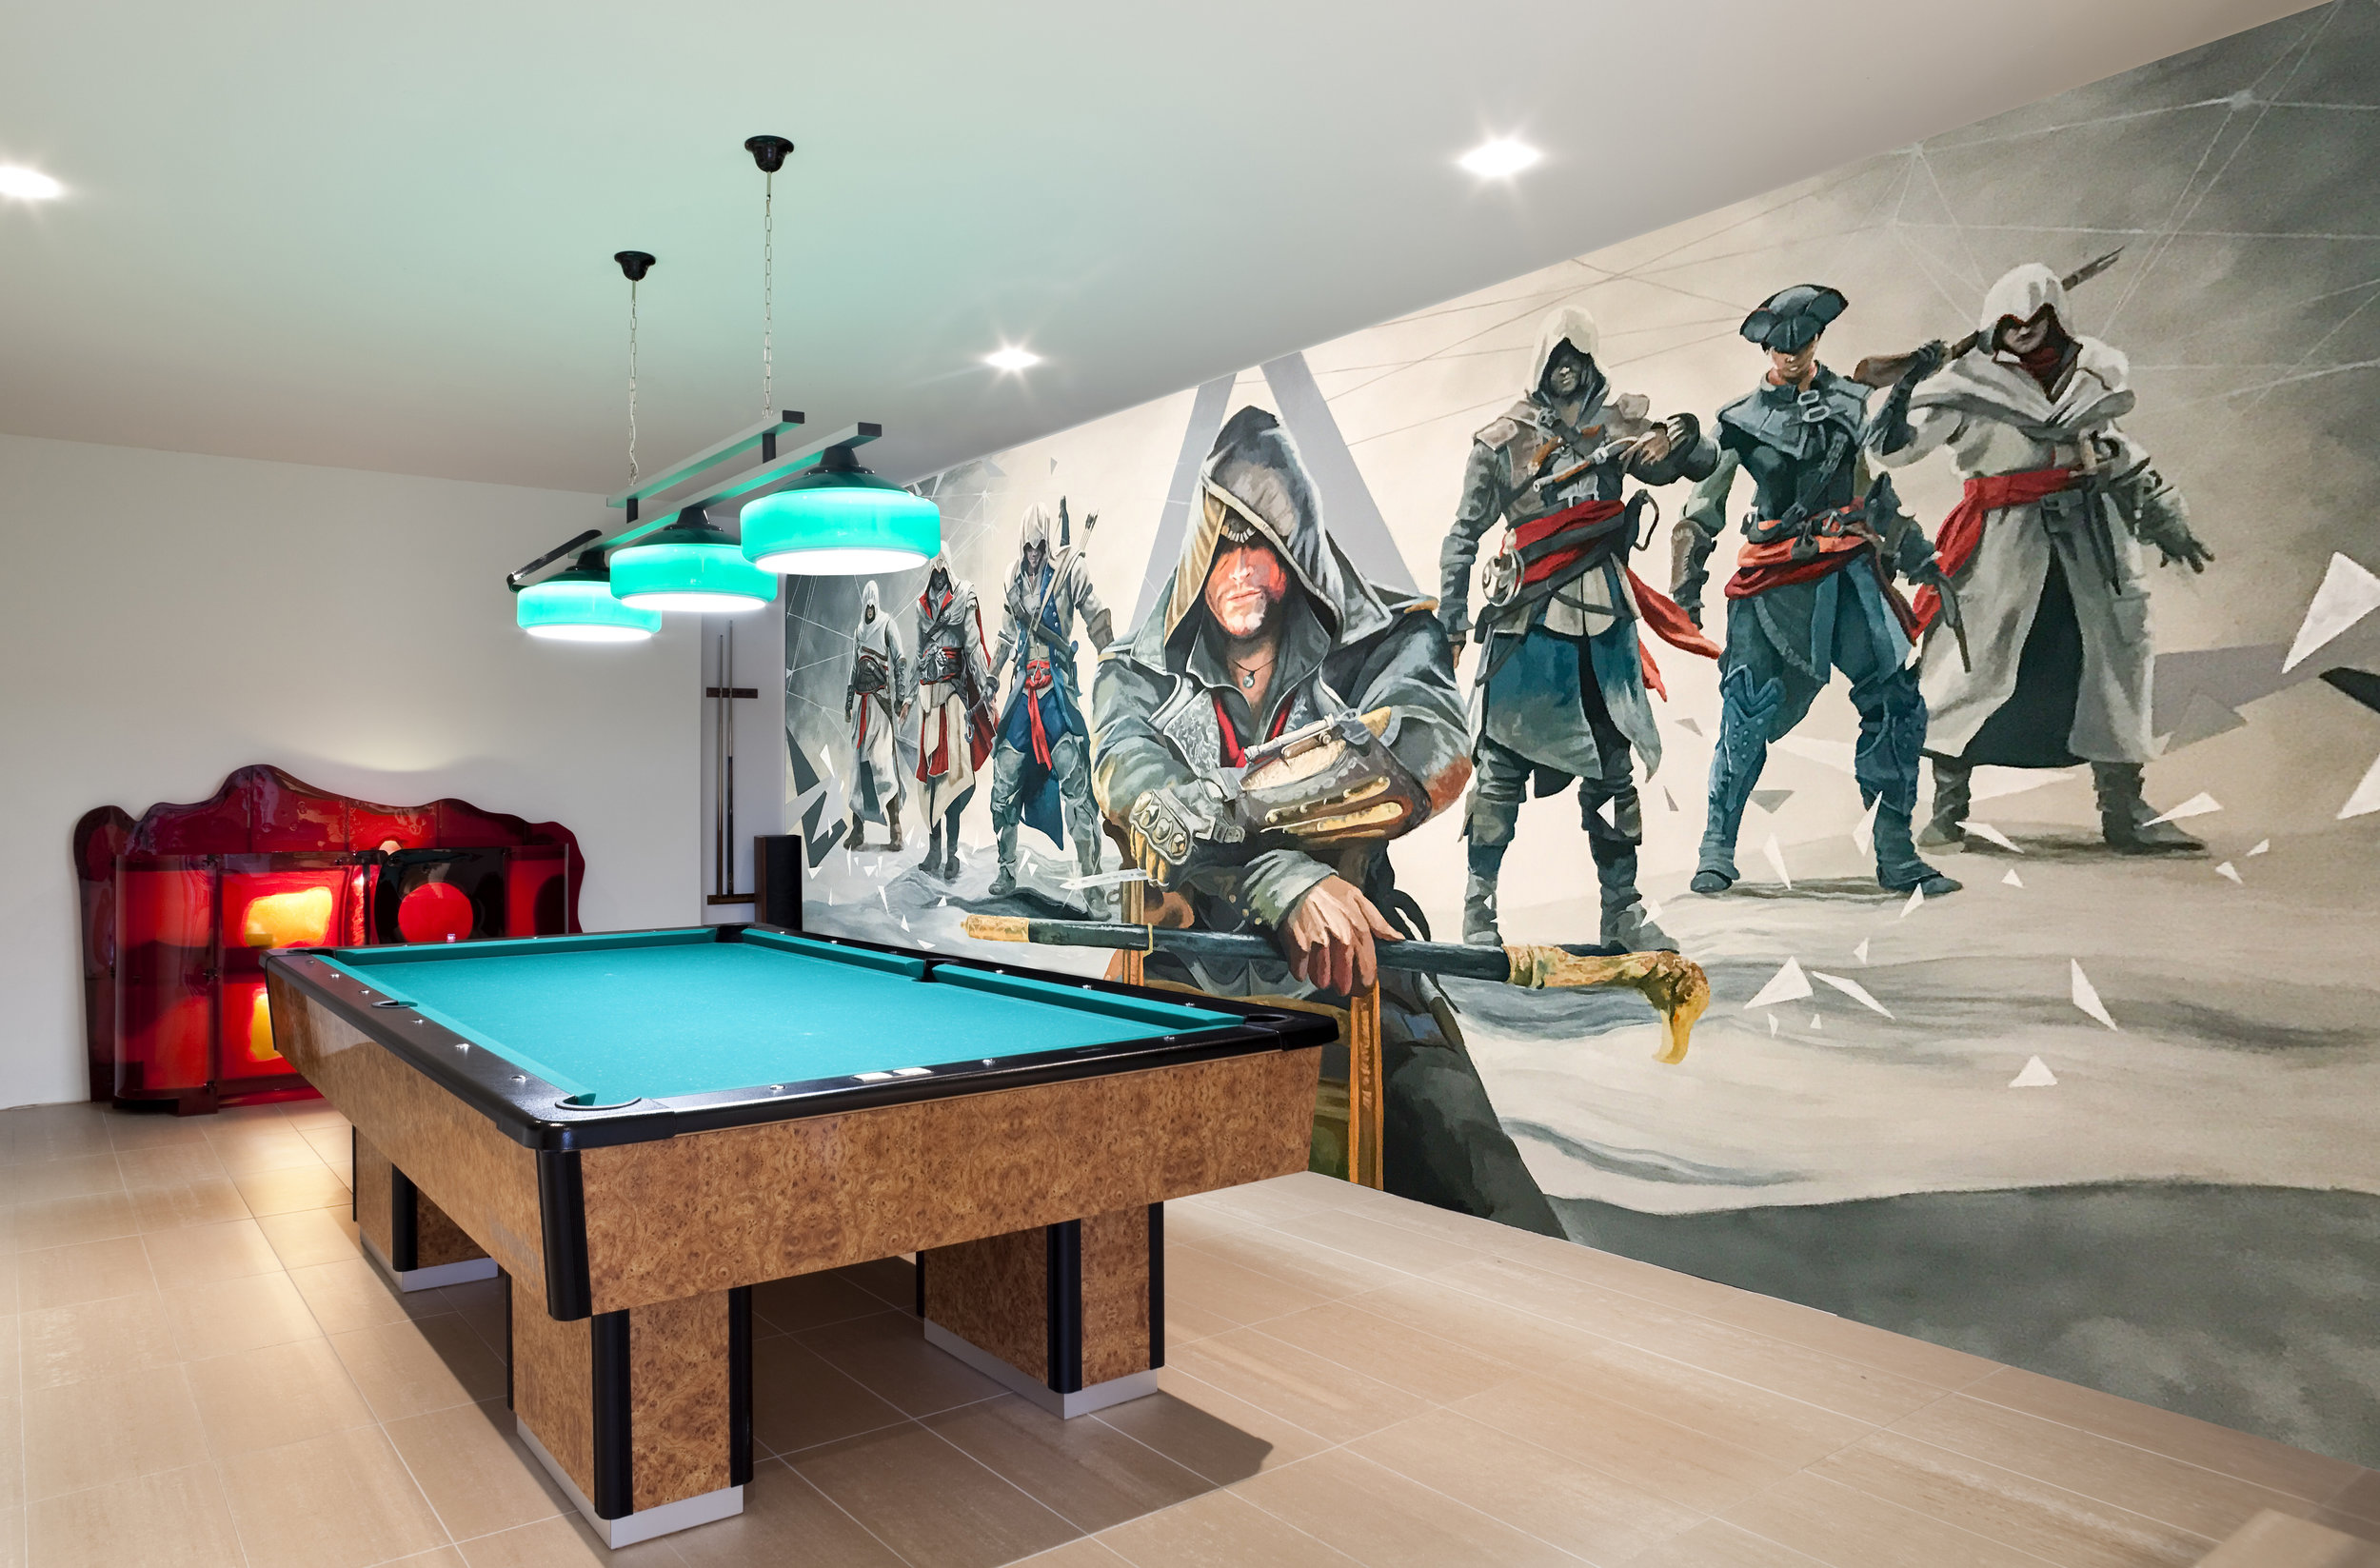 assasins creed games room.jpg